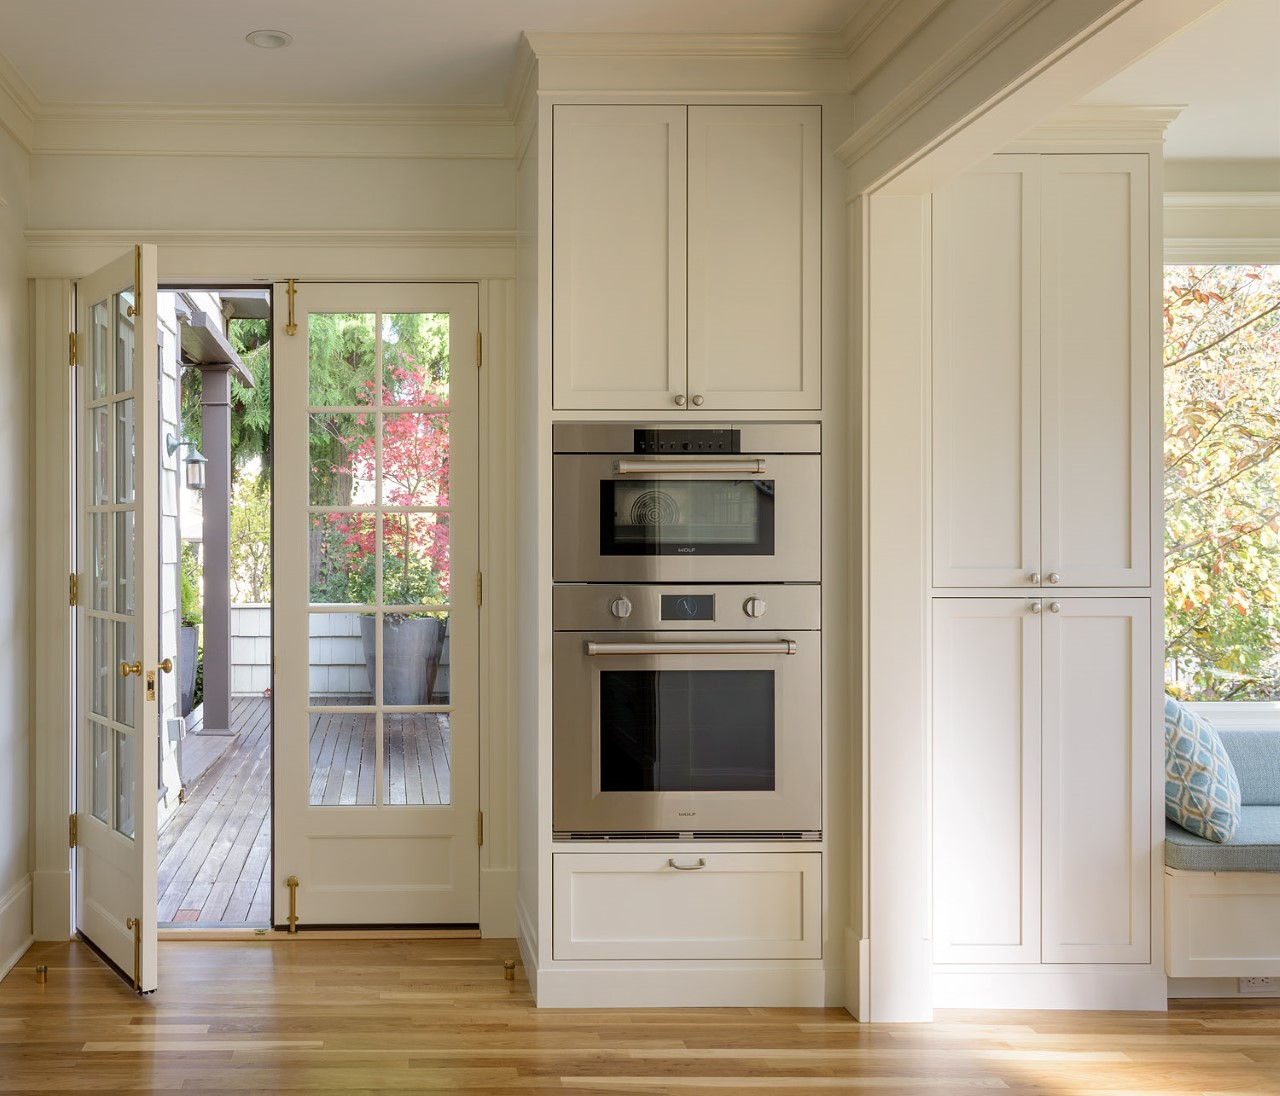 Madrona oven and french doors